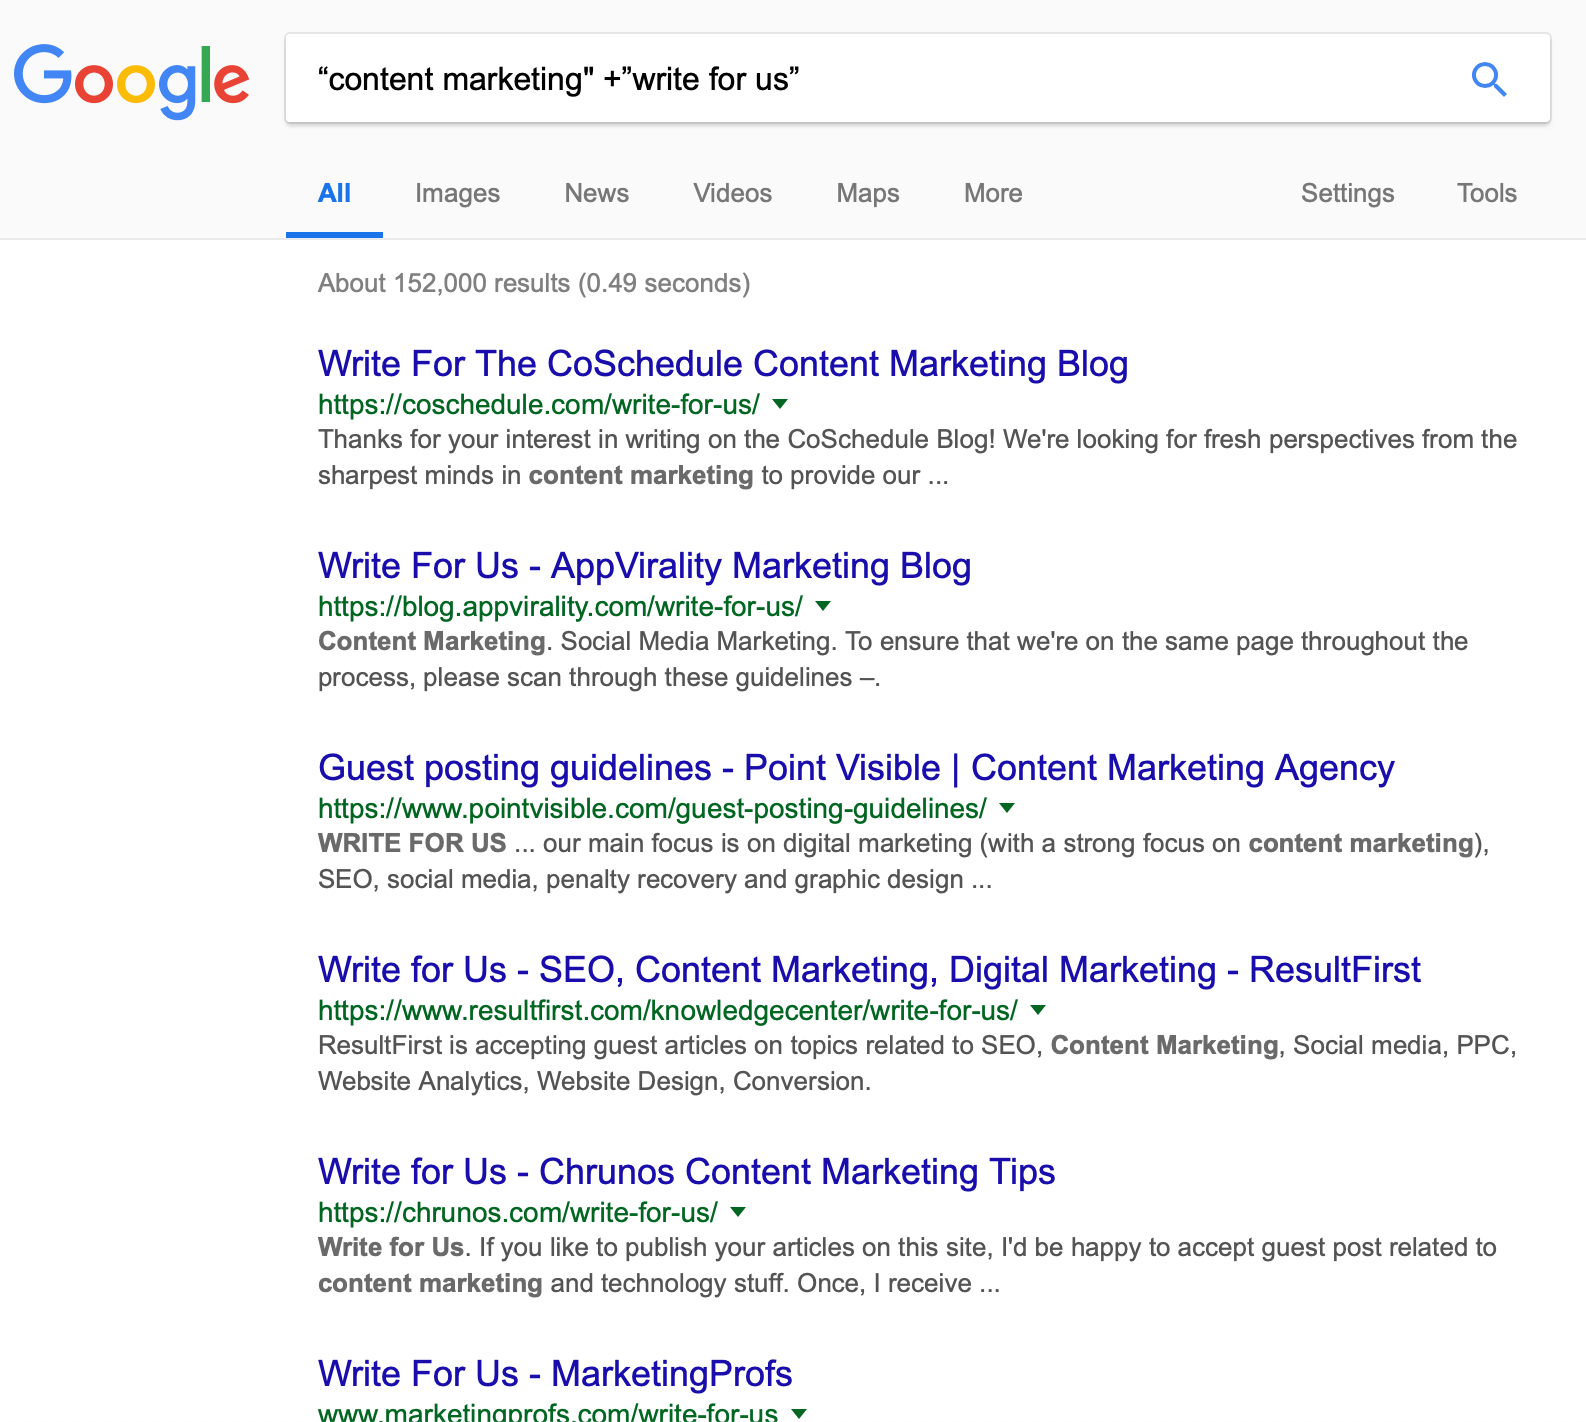 How to leverage Google's Search operators to find guest post